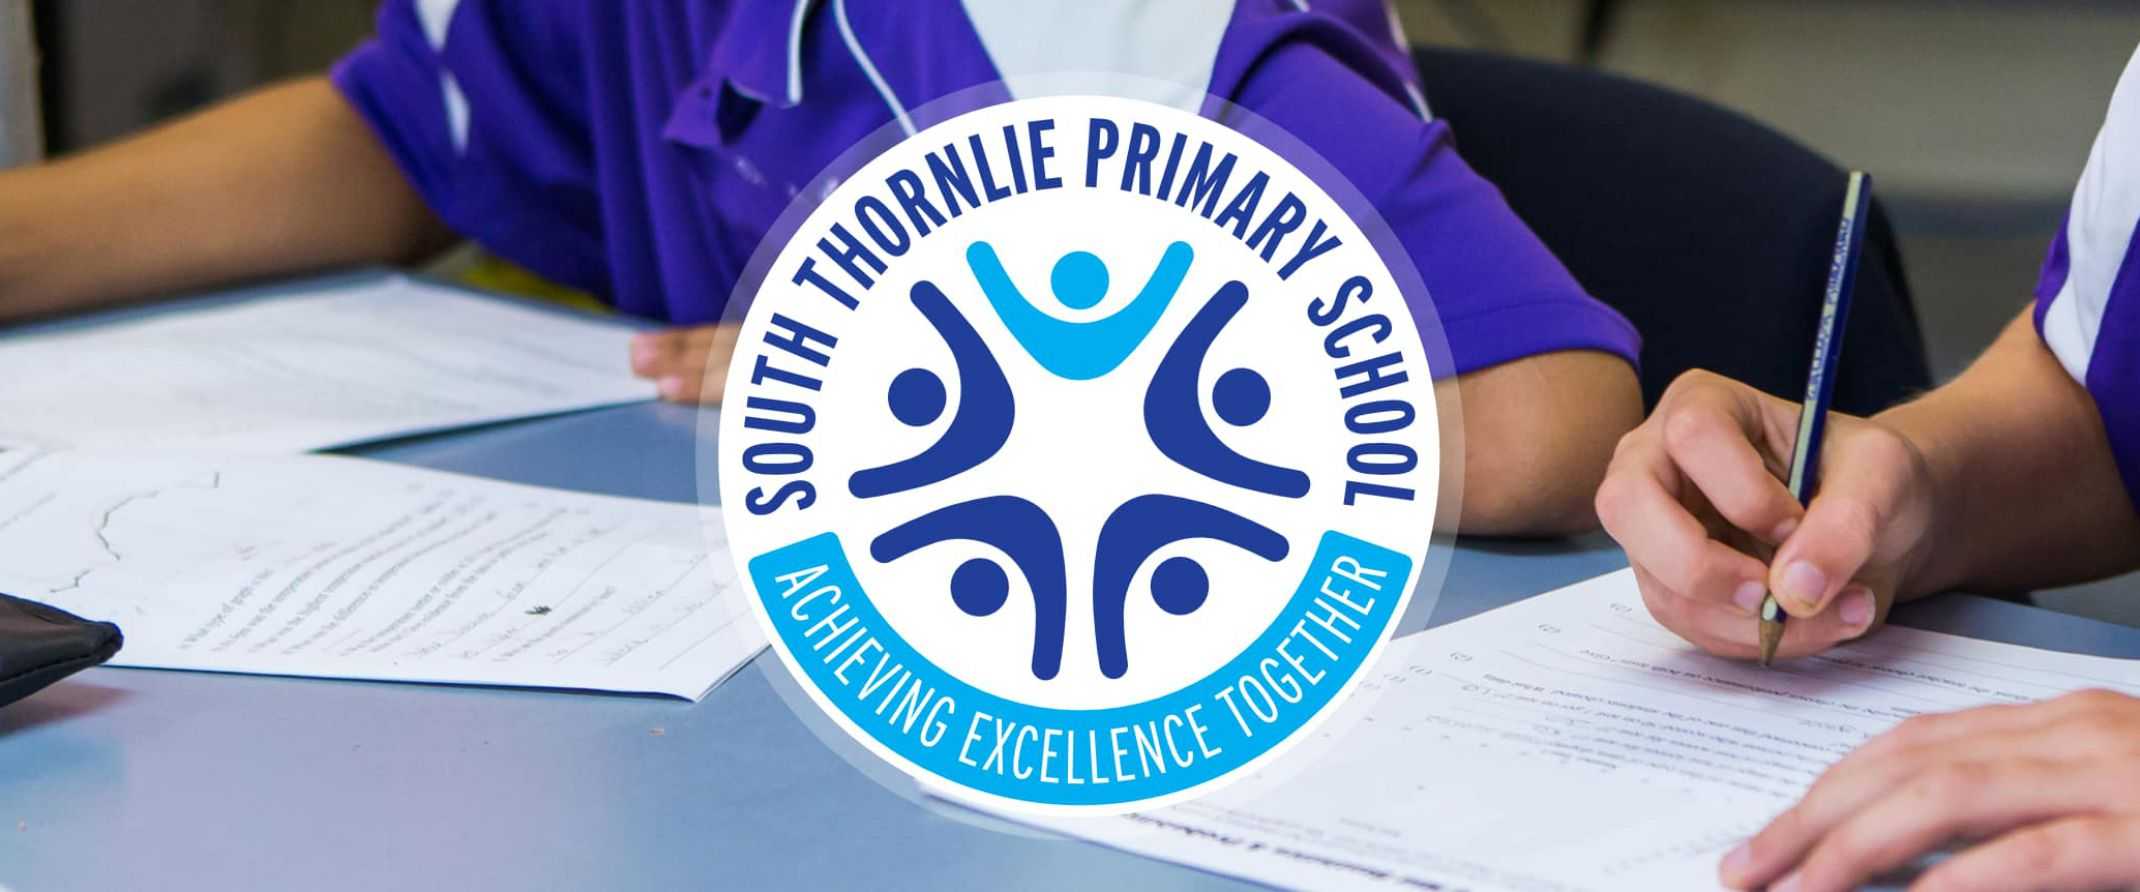 South Thornlie Primary School Website Development